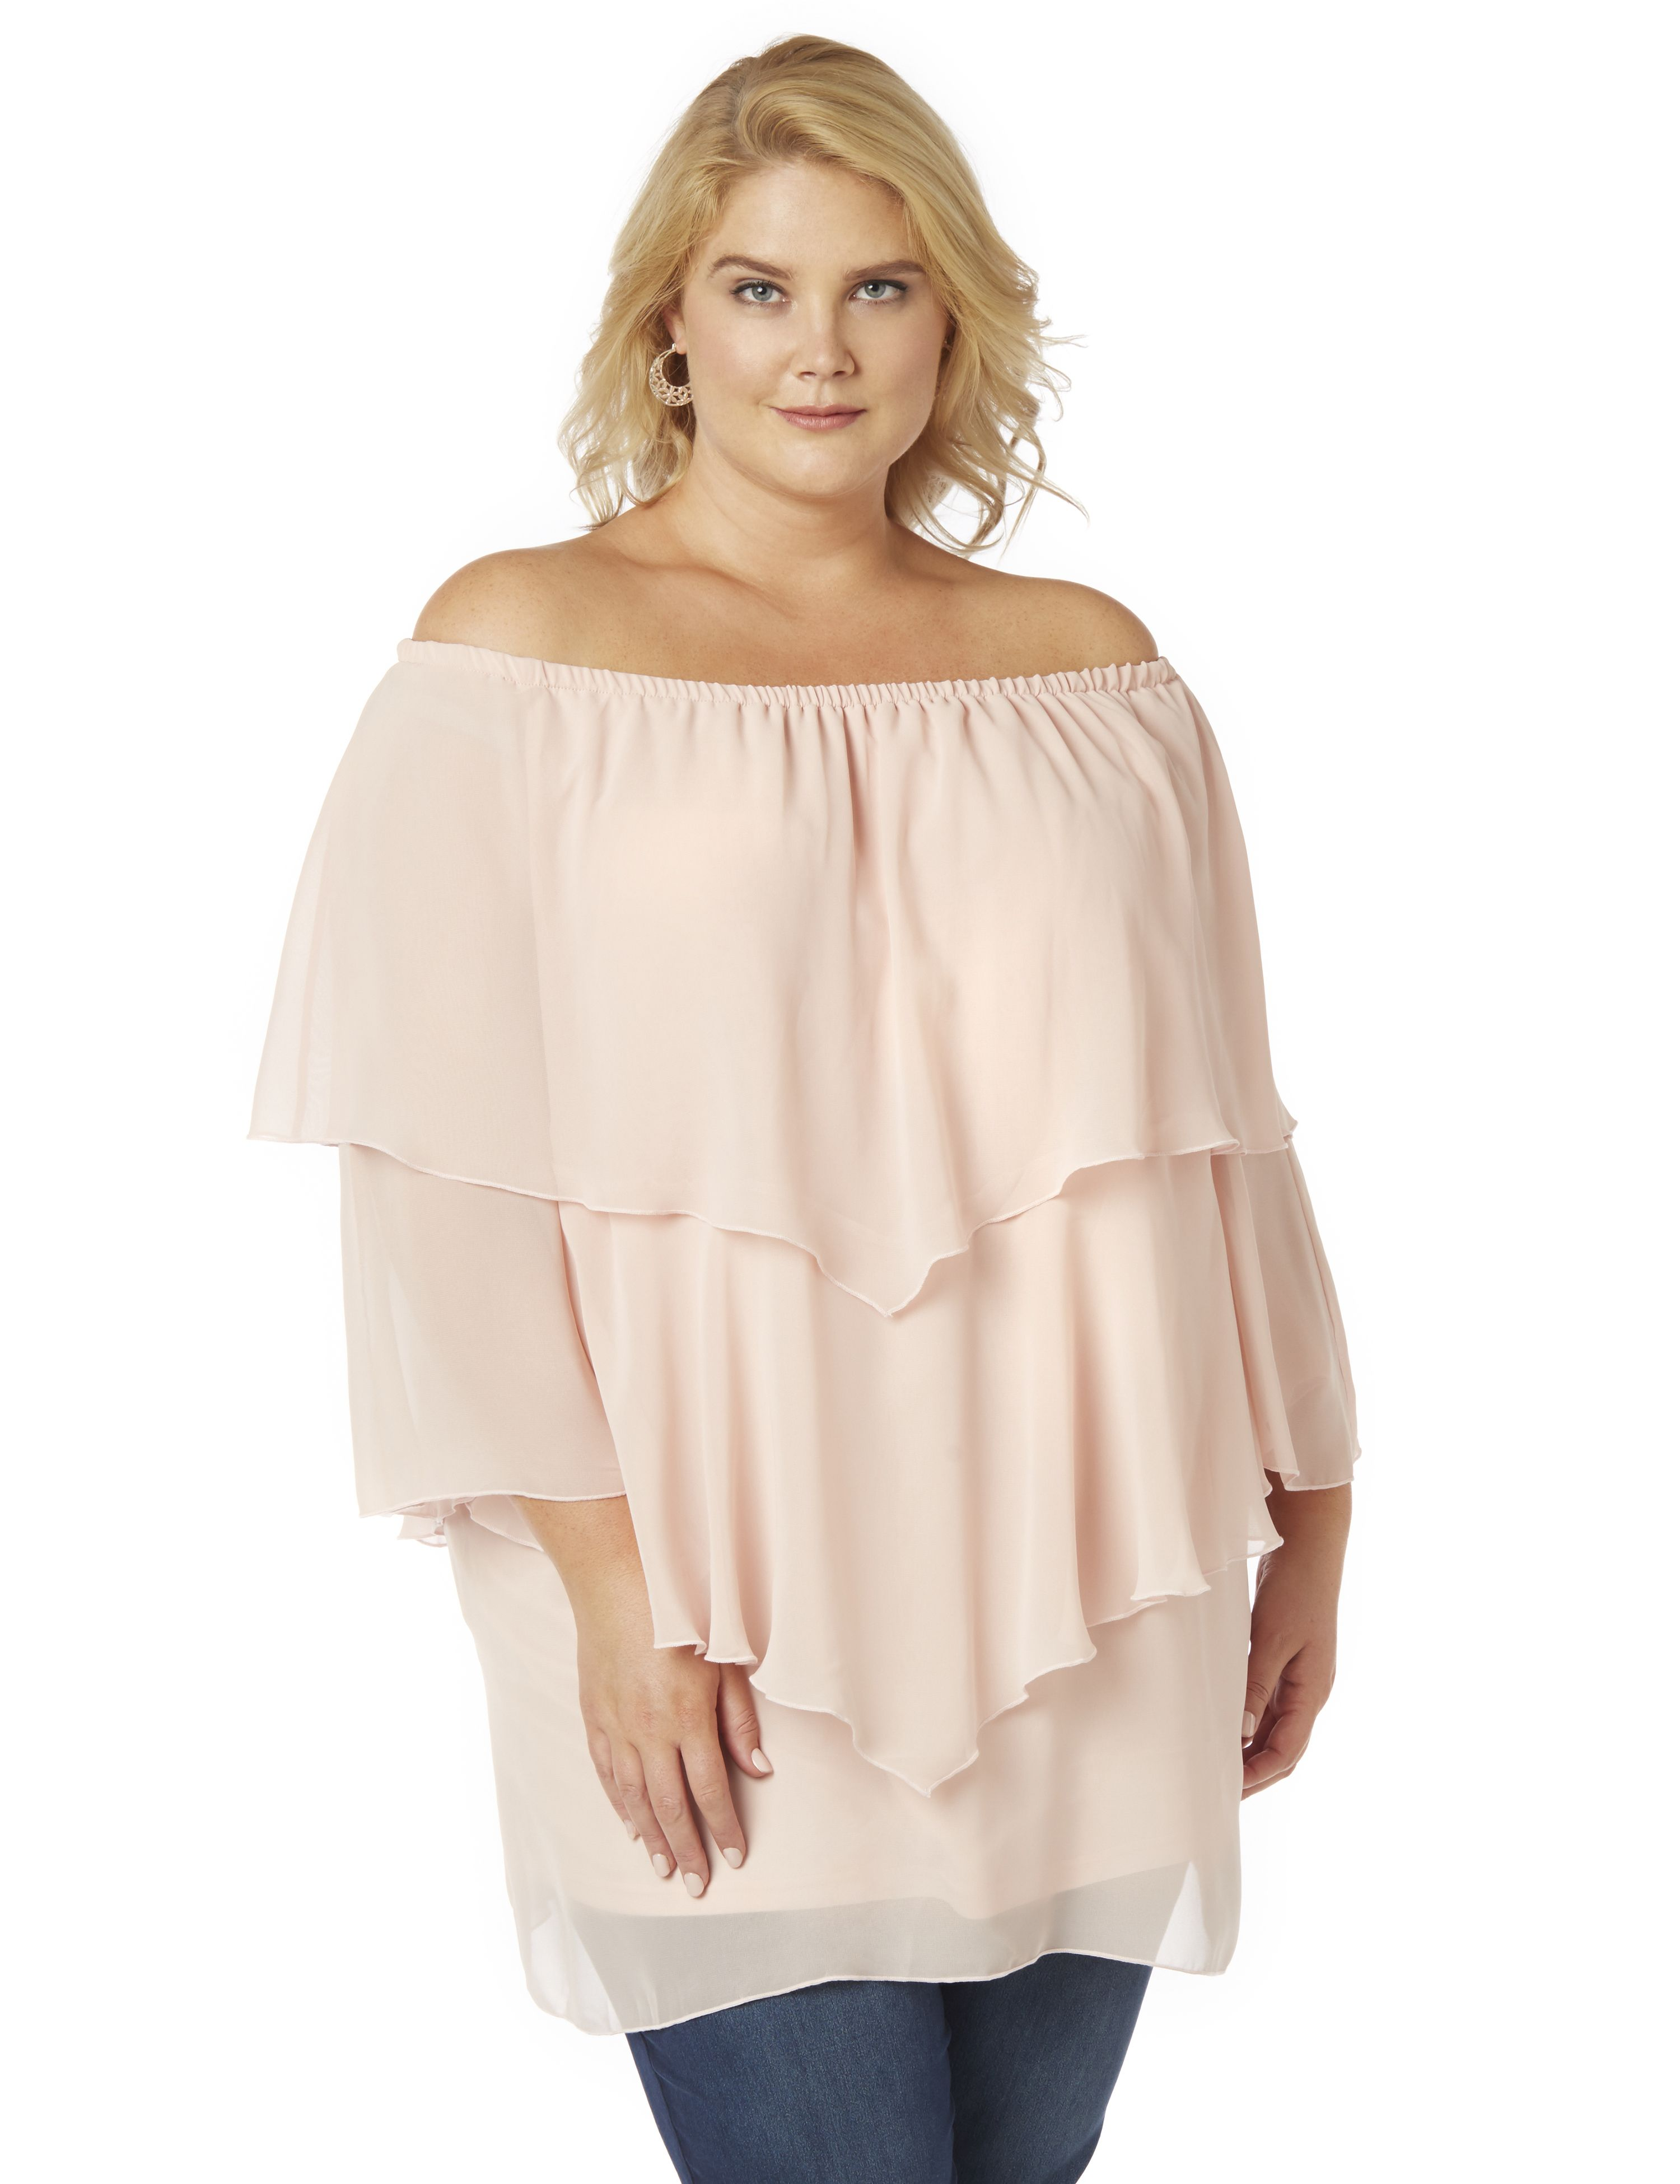 Pastel Love Spell Top Tiered Chiffon Top MP-300089788